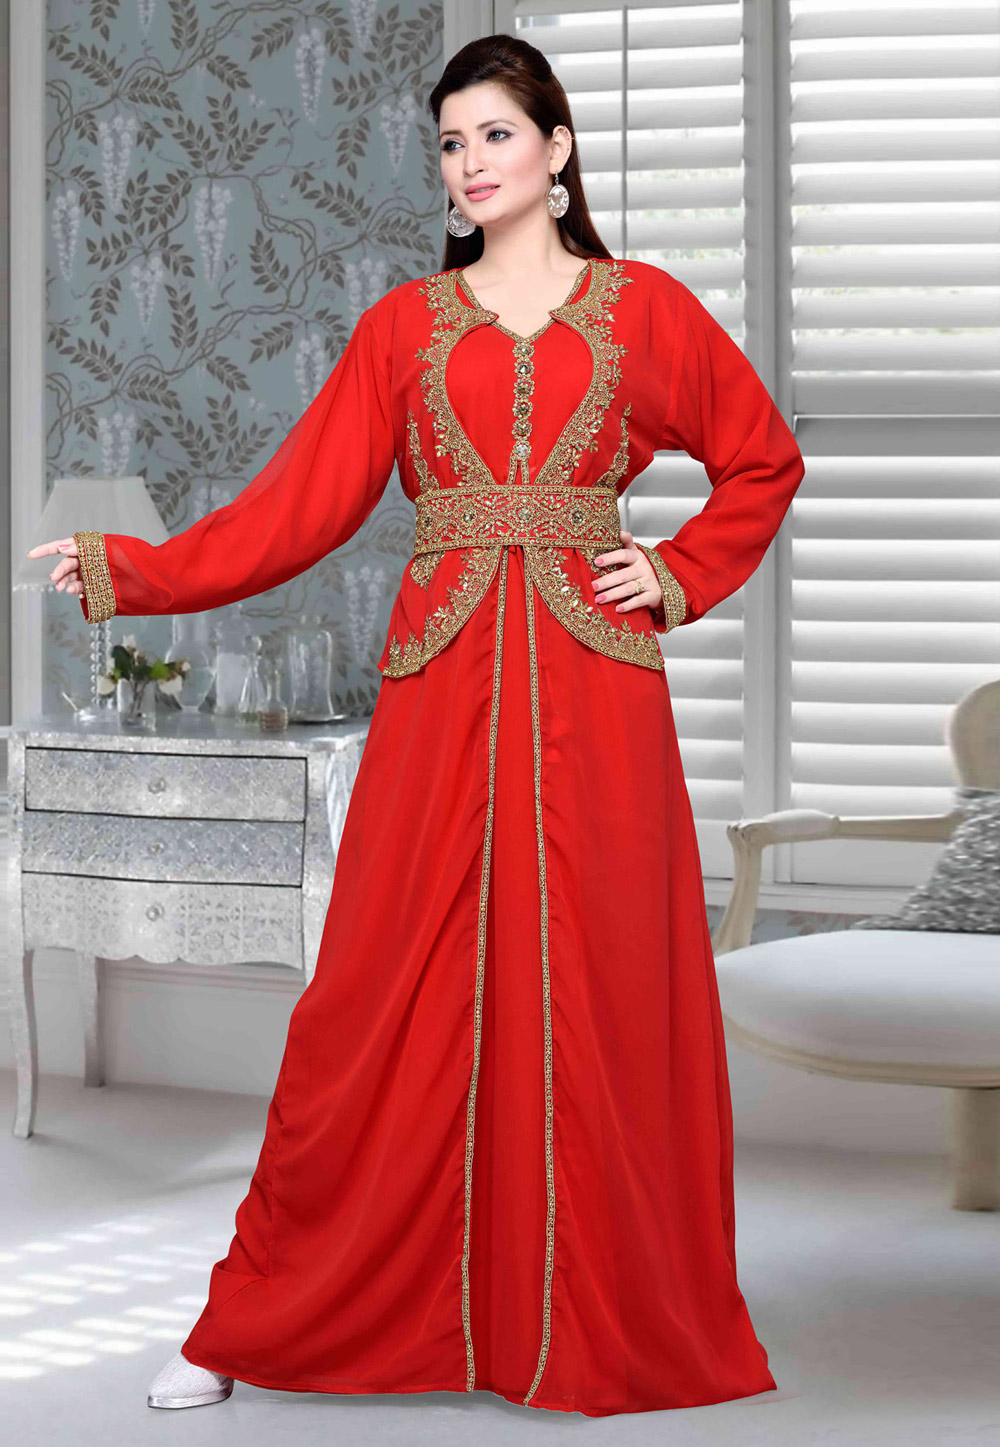 Red Faux Georgette Embroidered Readymade Moroccan Kaftan 194743